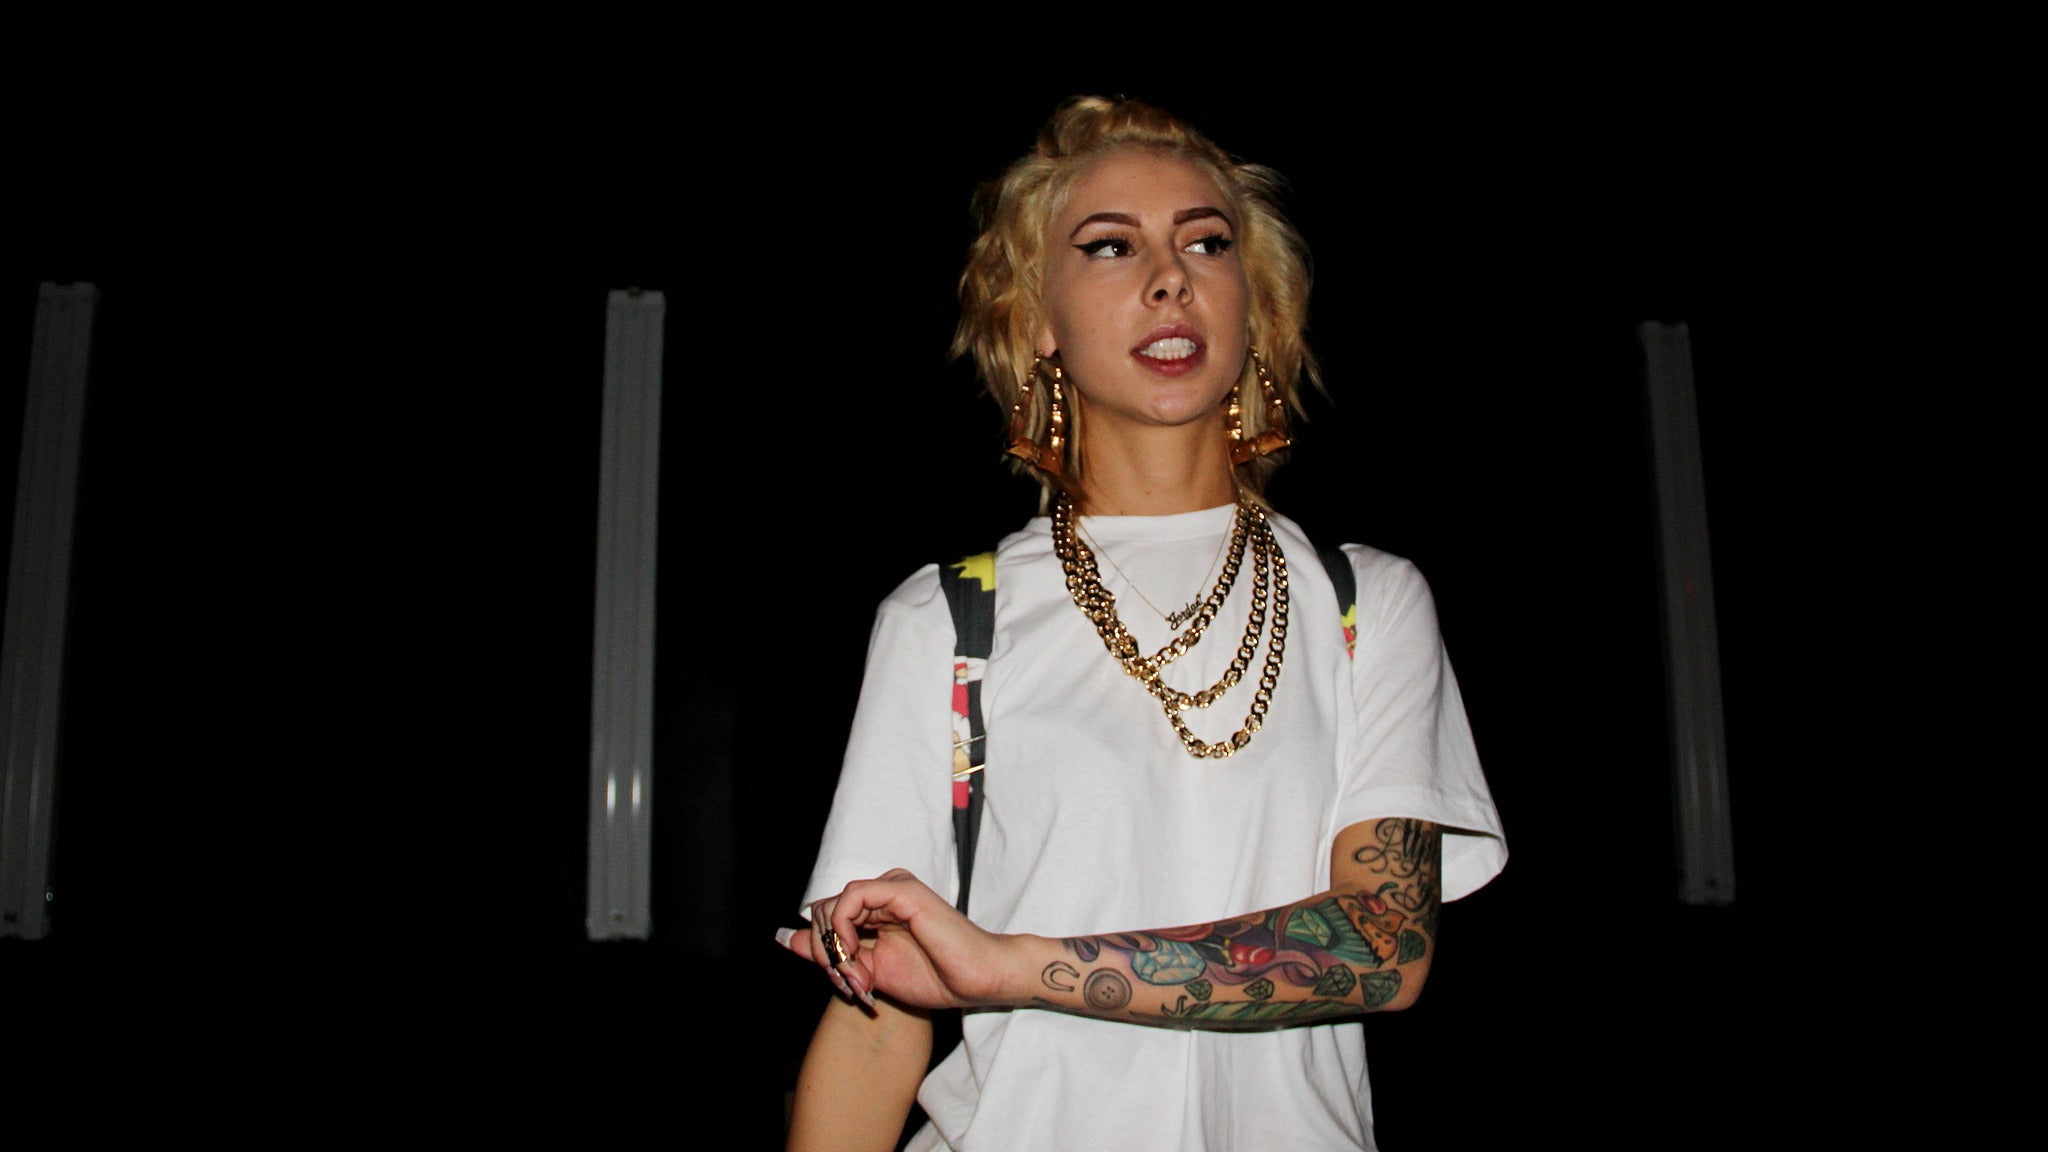 Lil Debbie at Whiskey Dick's